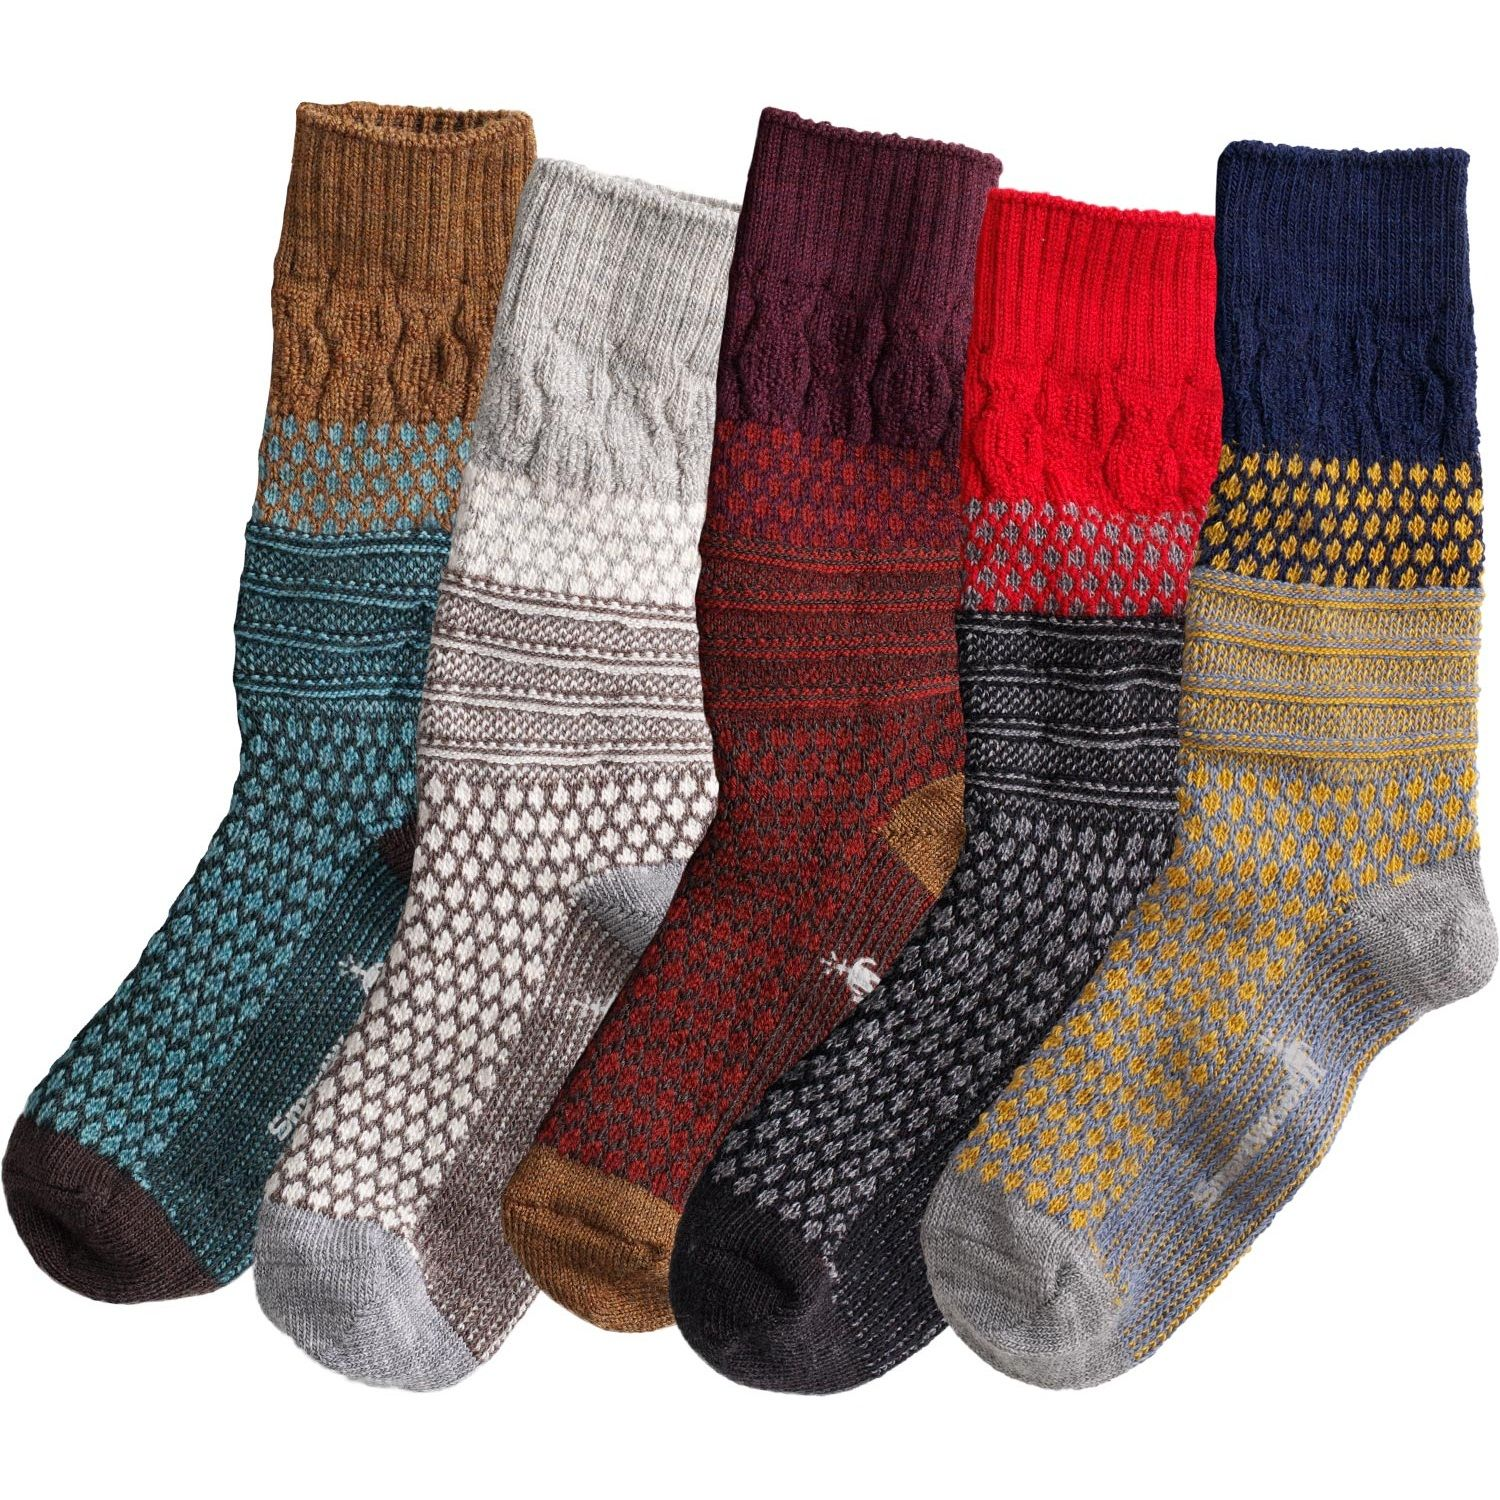 c0930aac41831 SmartWool Popcorn Cable Socks look cozily classic, but their performance is  totally high-tech. Their Wool-on-Wool technology absorbs shock with every  step.